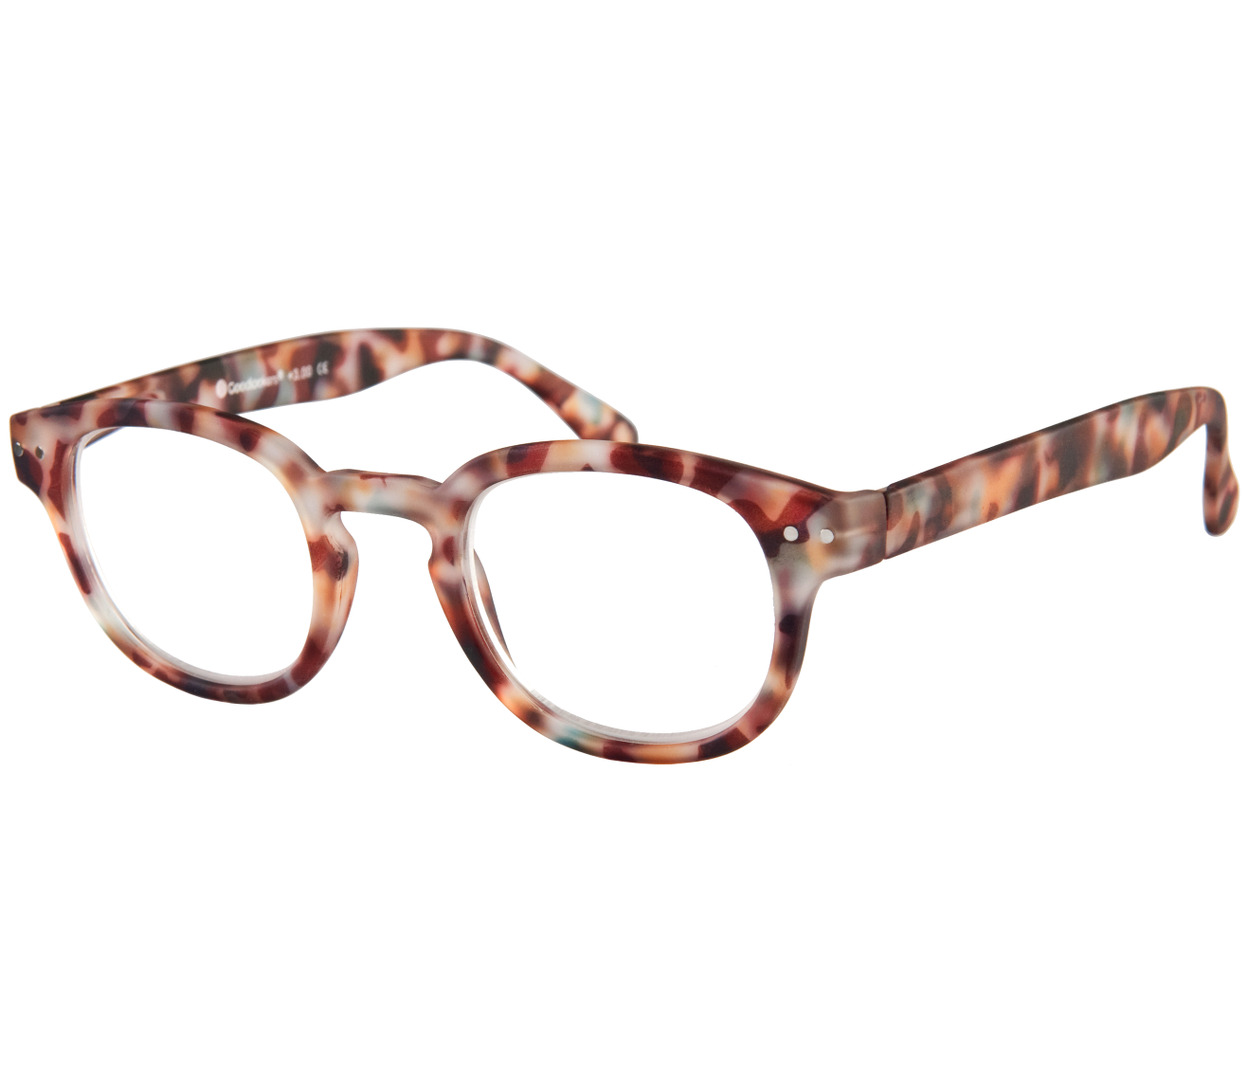 Main Image (Angle) - Greenwich (Multi Tortoise) Retro Reading Glasses